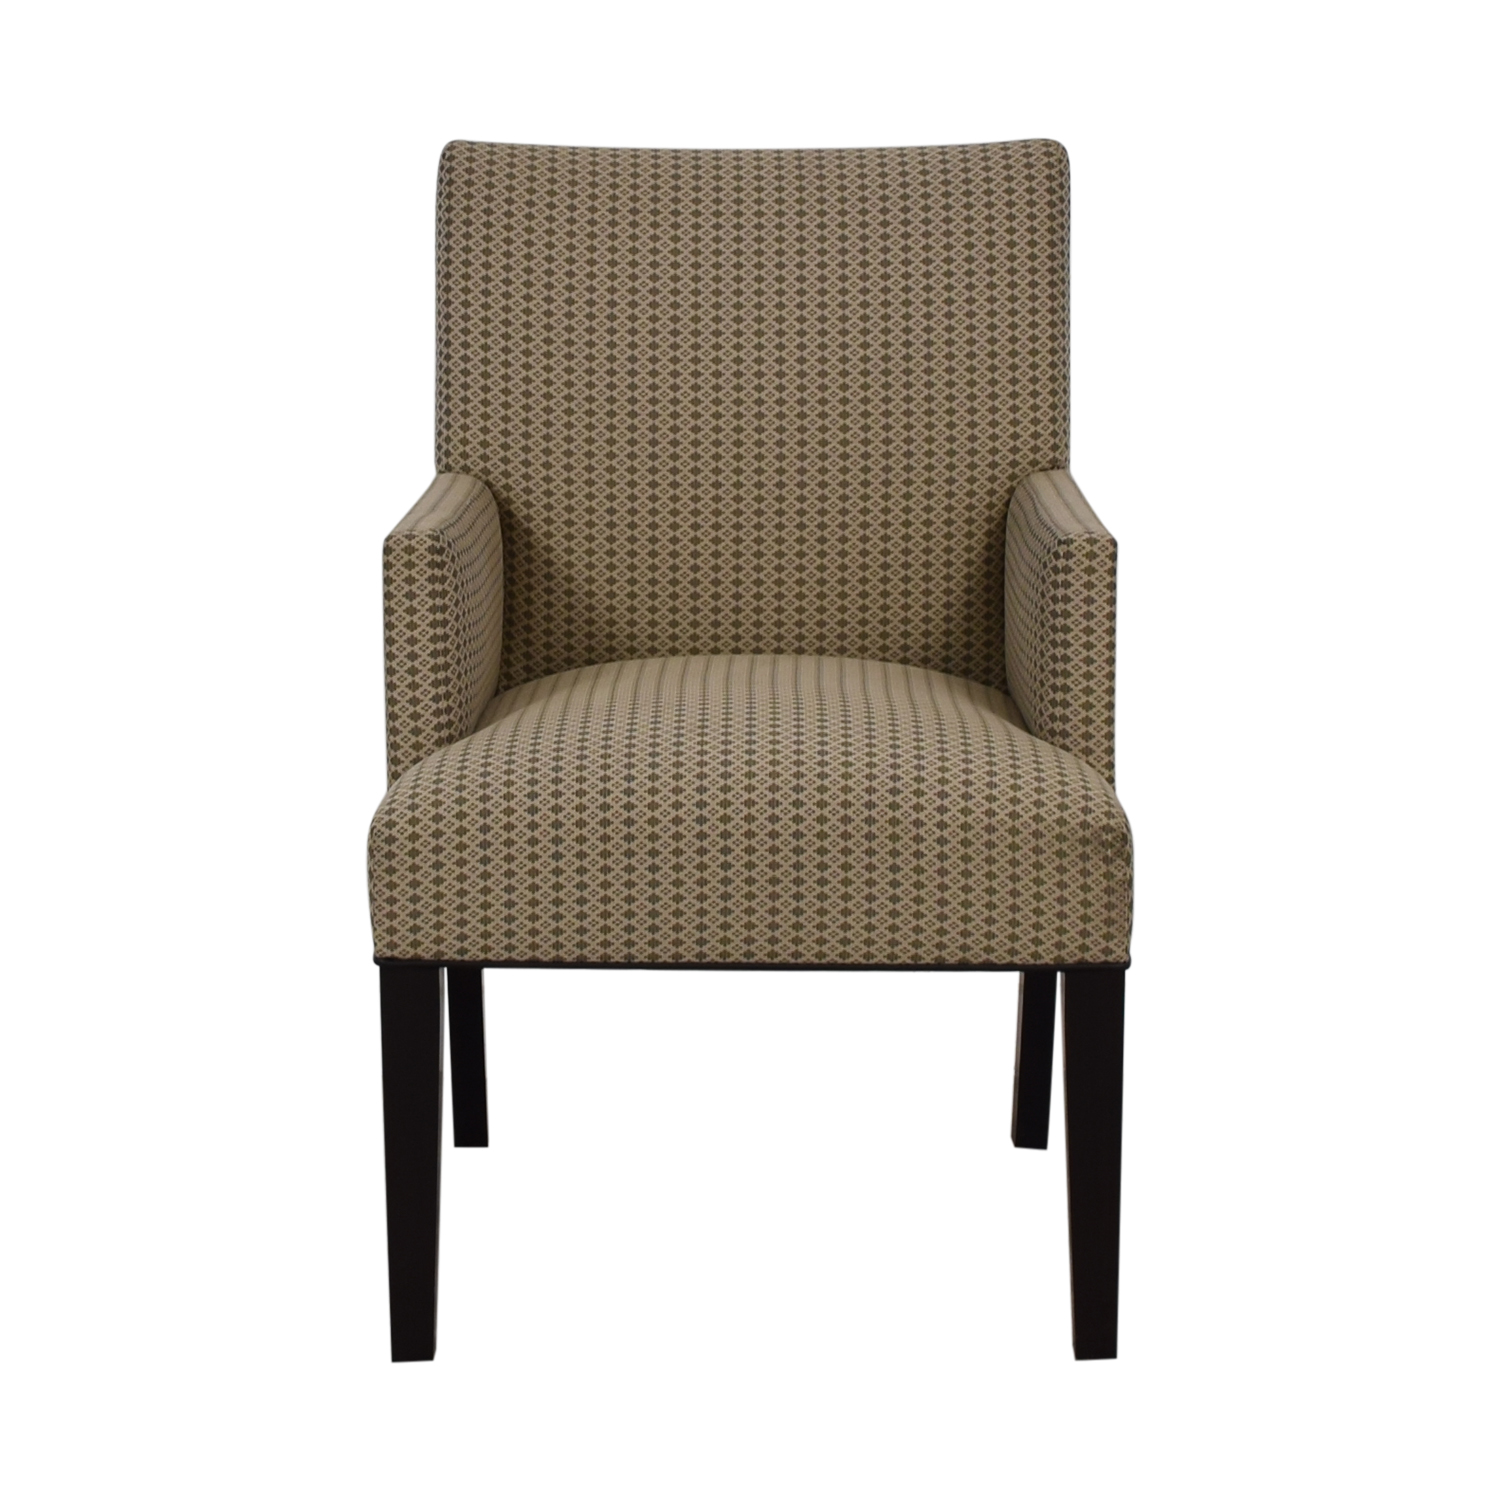 Furniture Masters Furniture Masters Beige Armchair dimensions